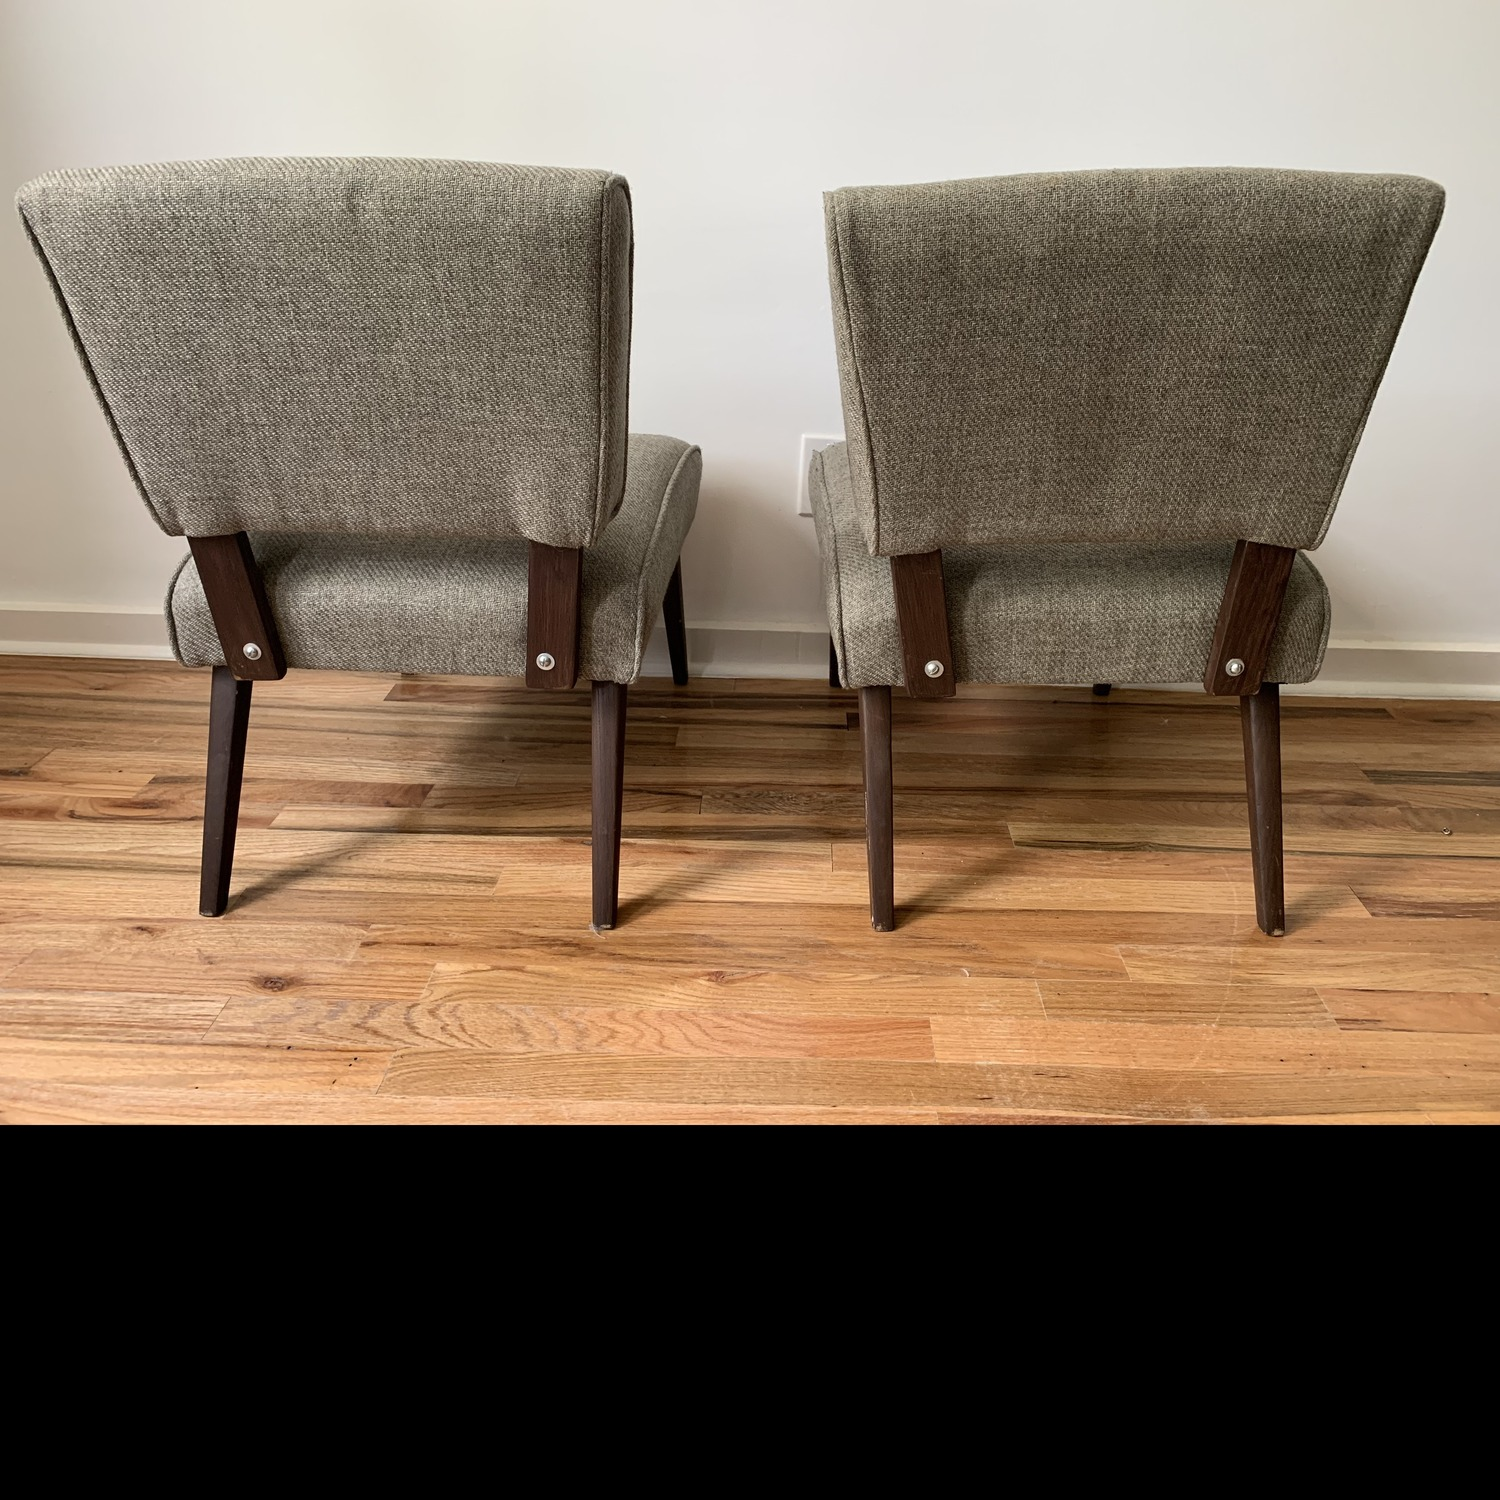 Vintage Mid Century Accent Chairs - image-2